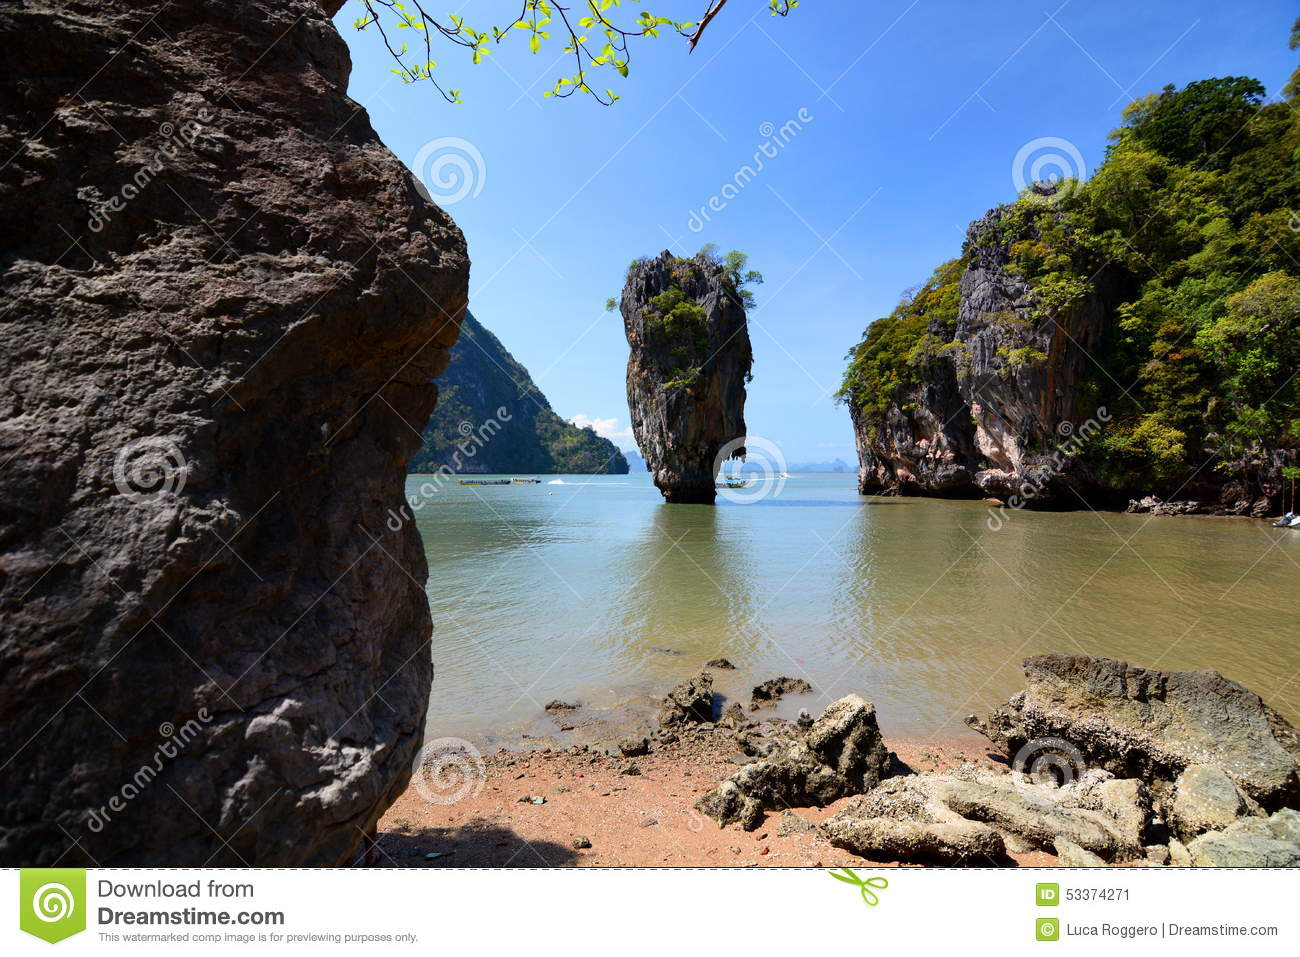 Khao Phing Kan clipart #4, Download drawings